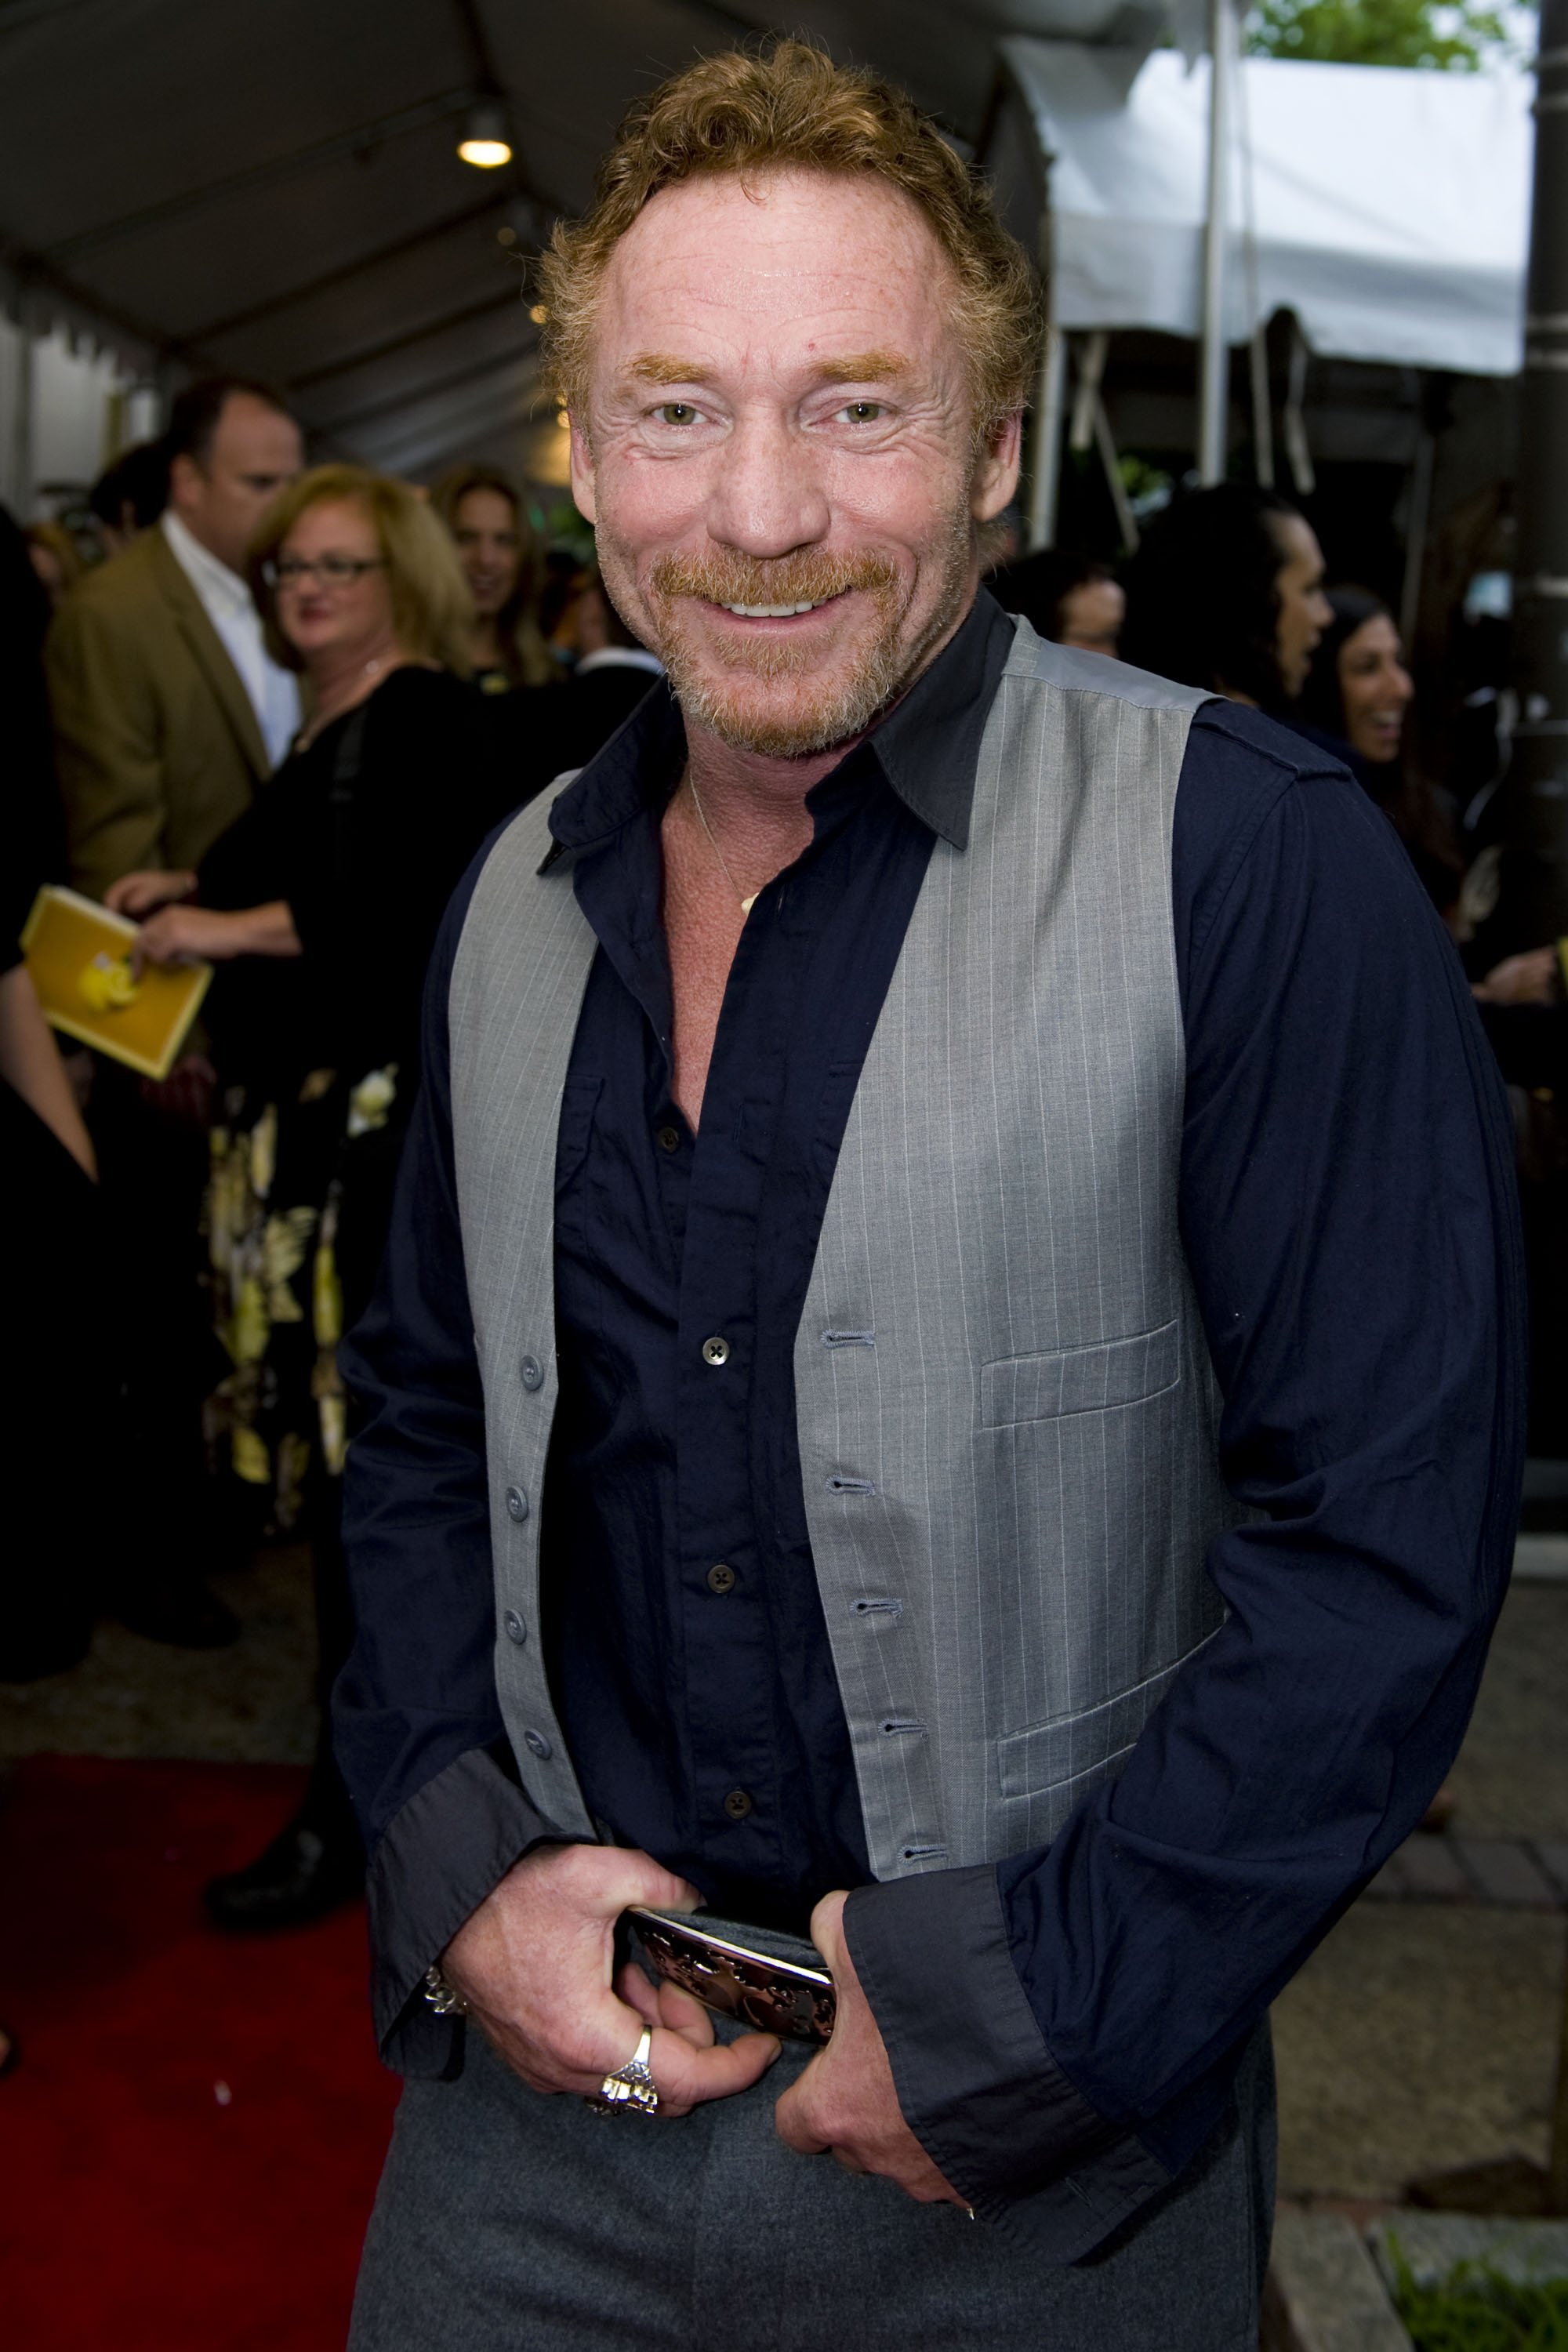 Danny Bonaduce is seen at the 4th Annual Great Chefs Event Benefiting Alex's Lemonade Stand Foundation at Osteria on June 17, 2009 | Photo: Getty Images